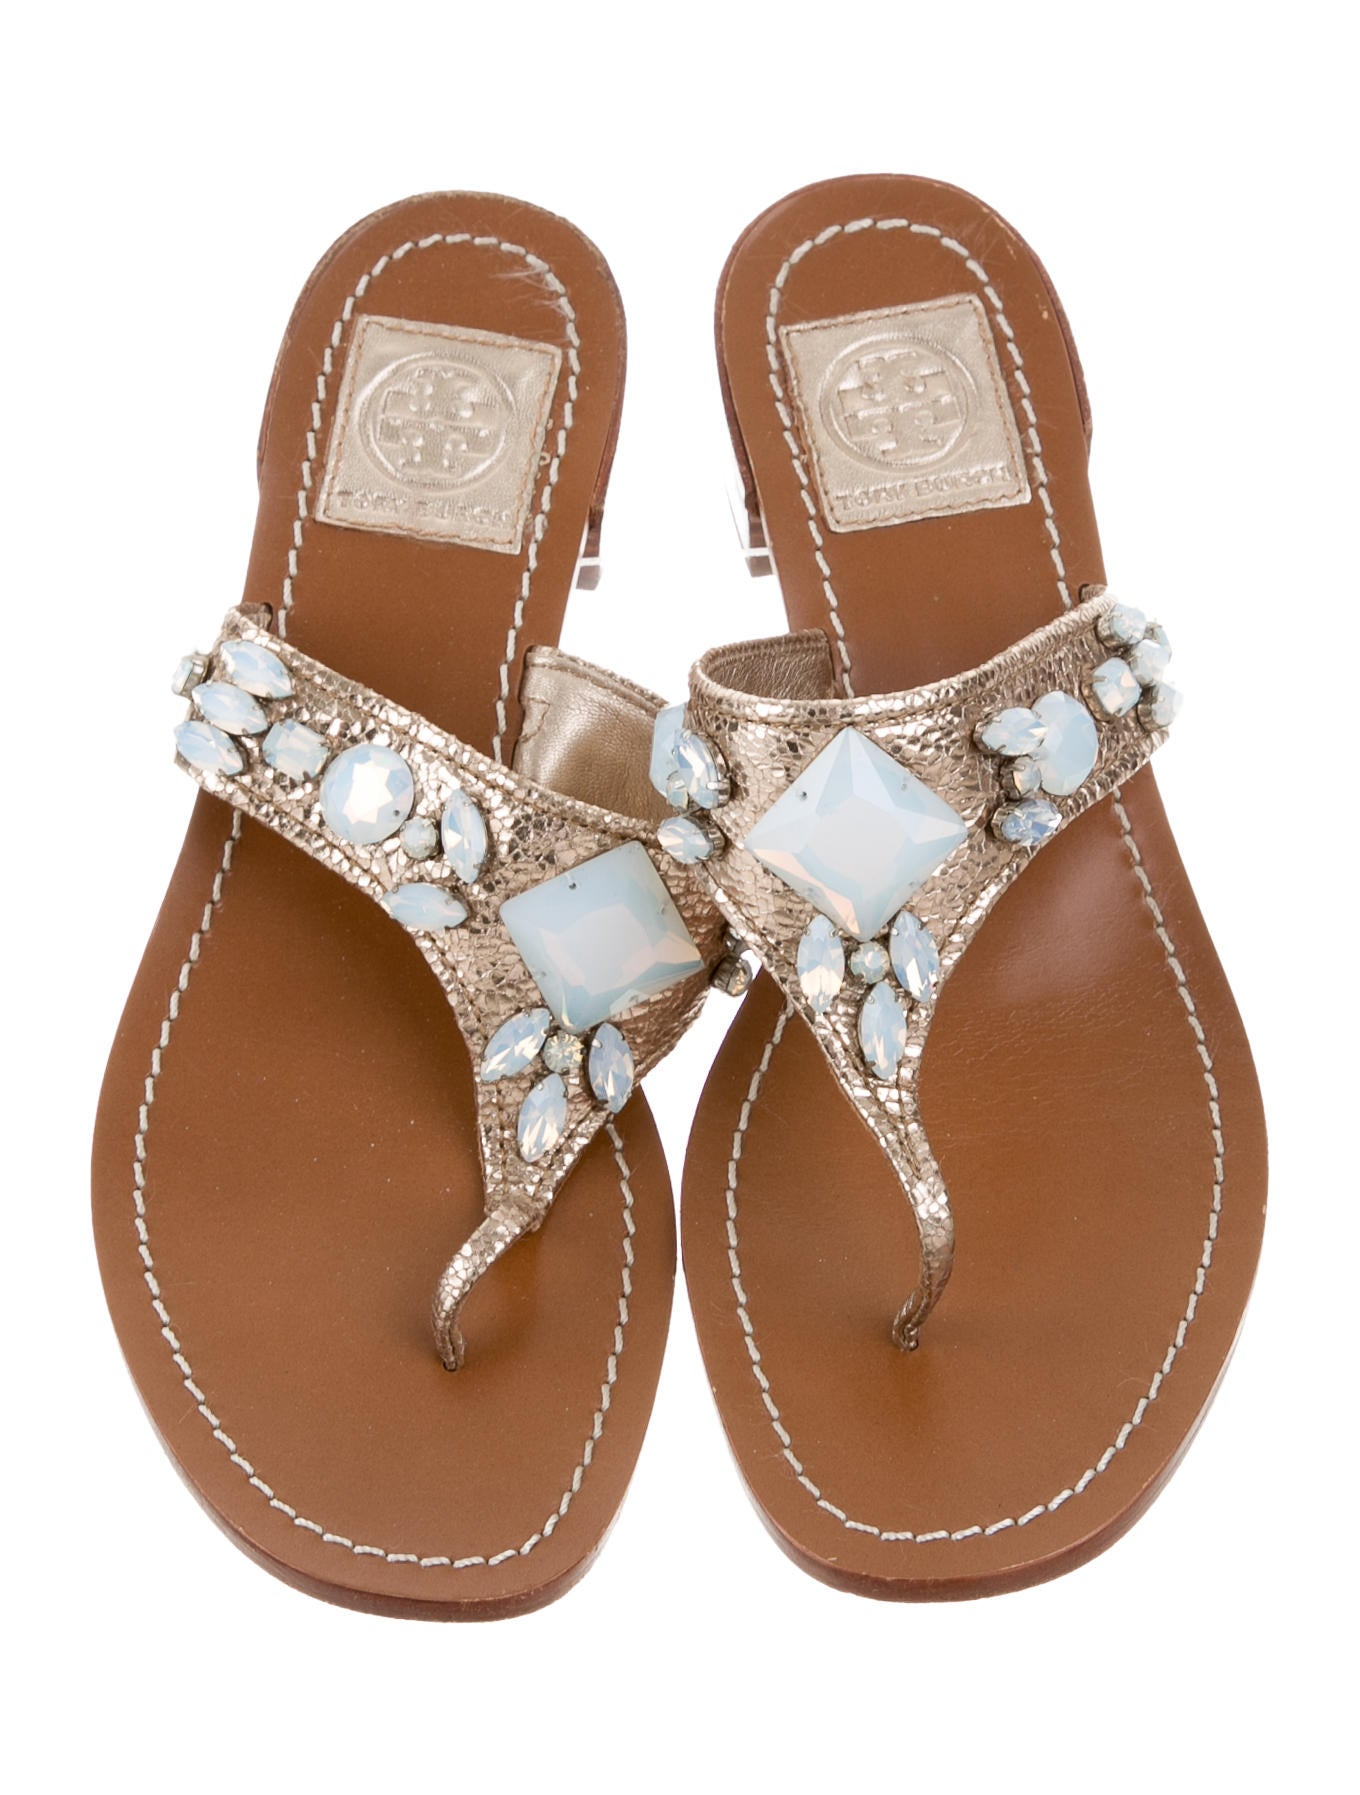 tory burch embellished thong sandals shoes wto97519. Black Bedroom Furniture Sets. Home Design Ideas